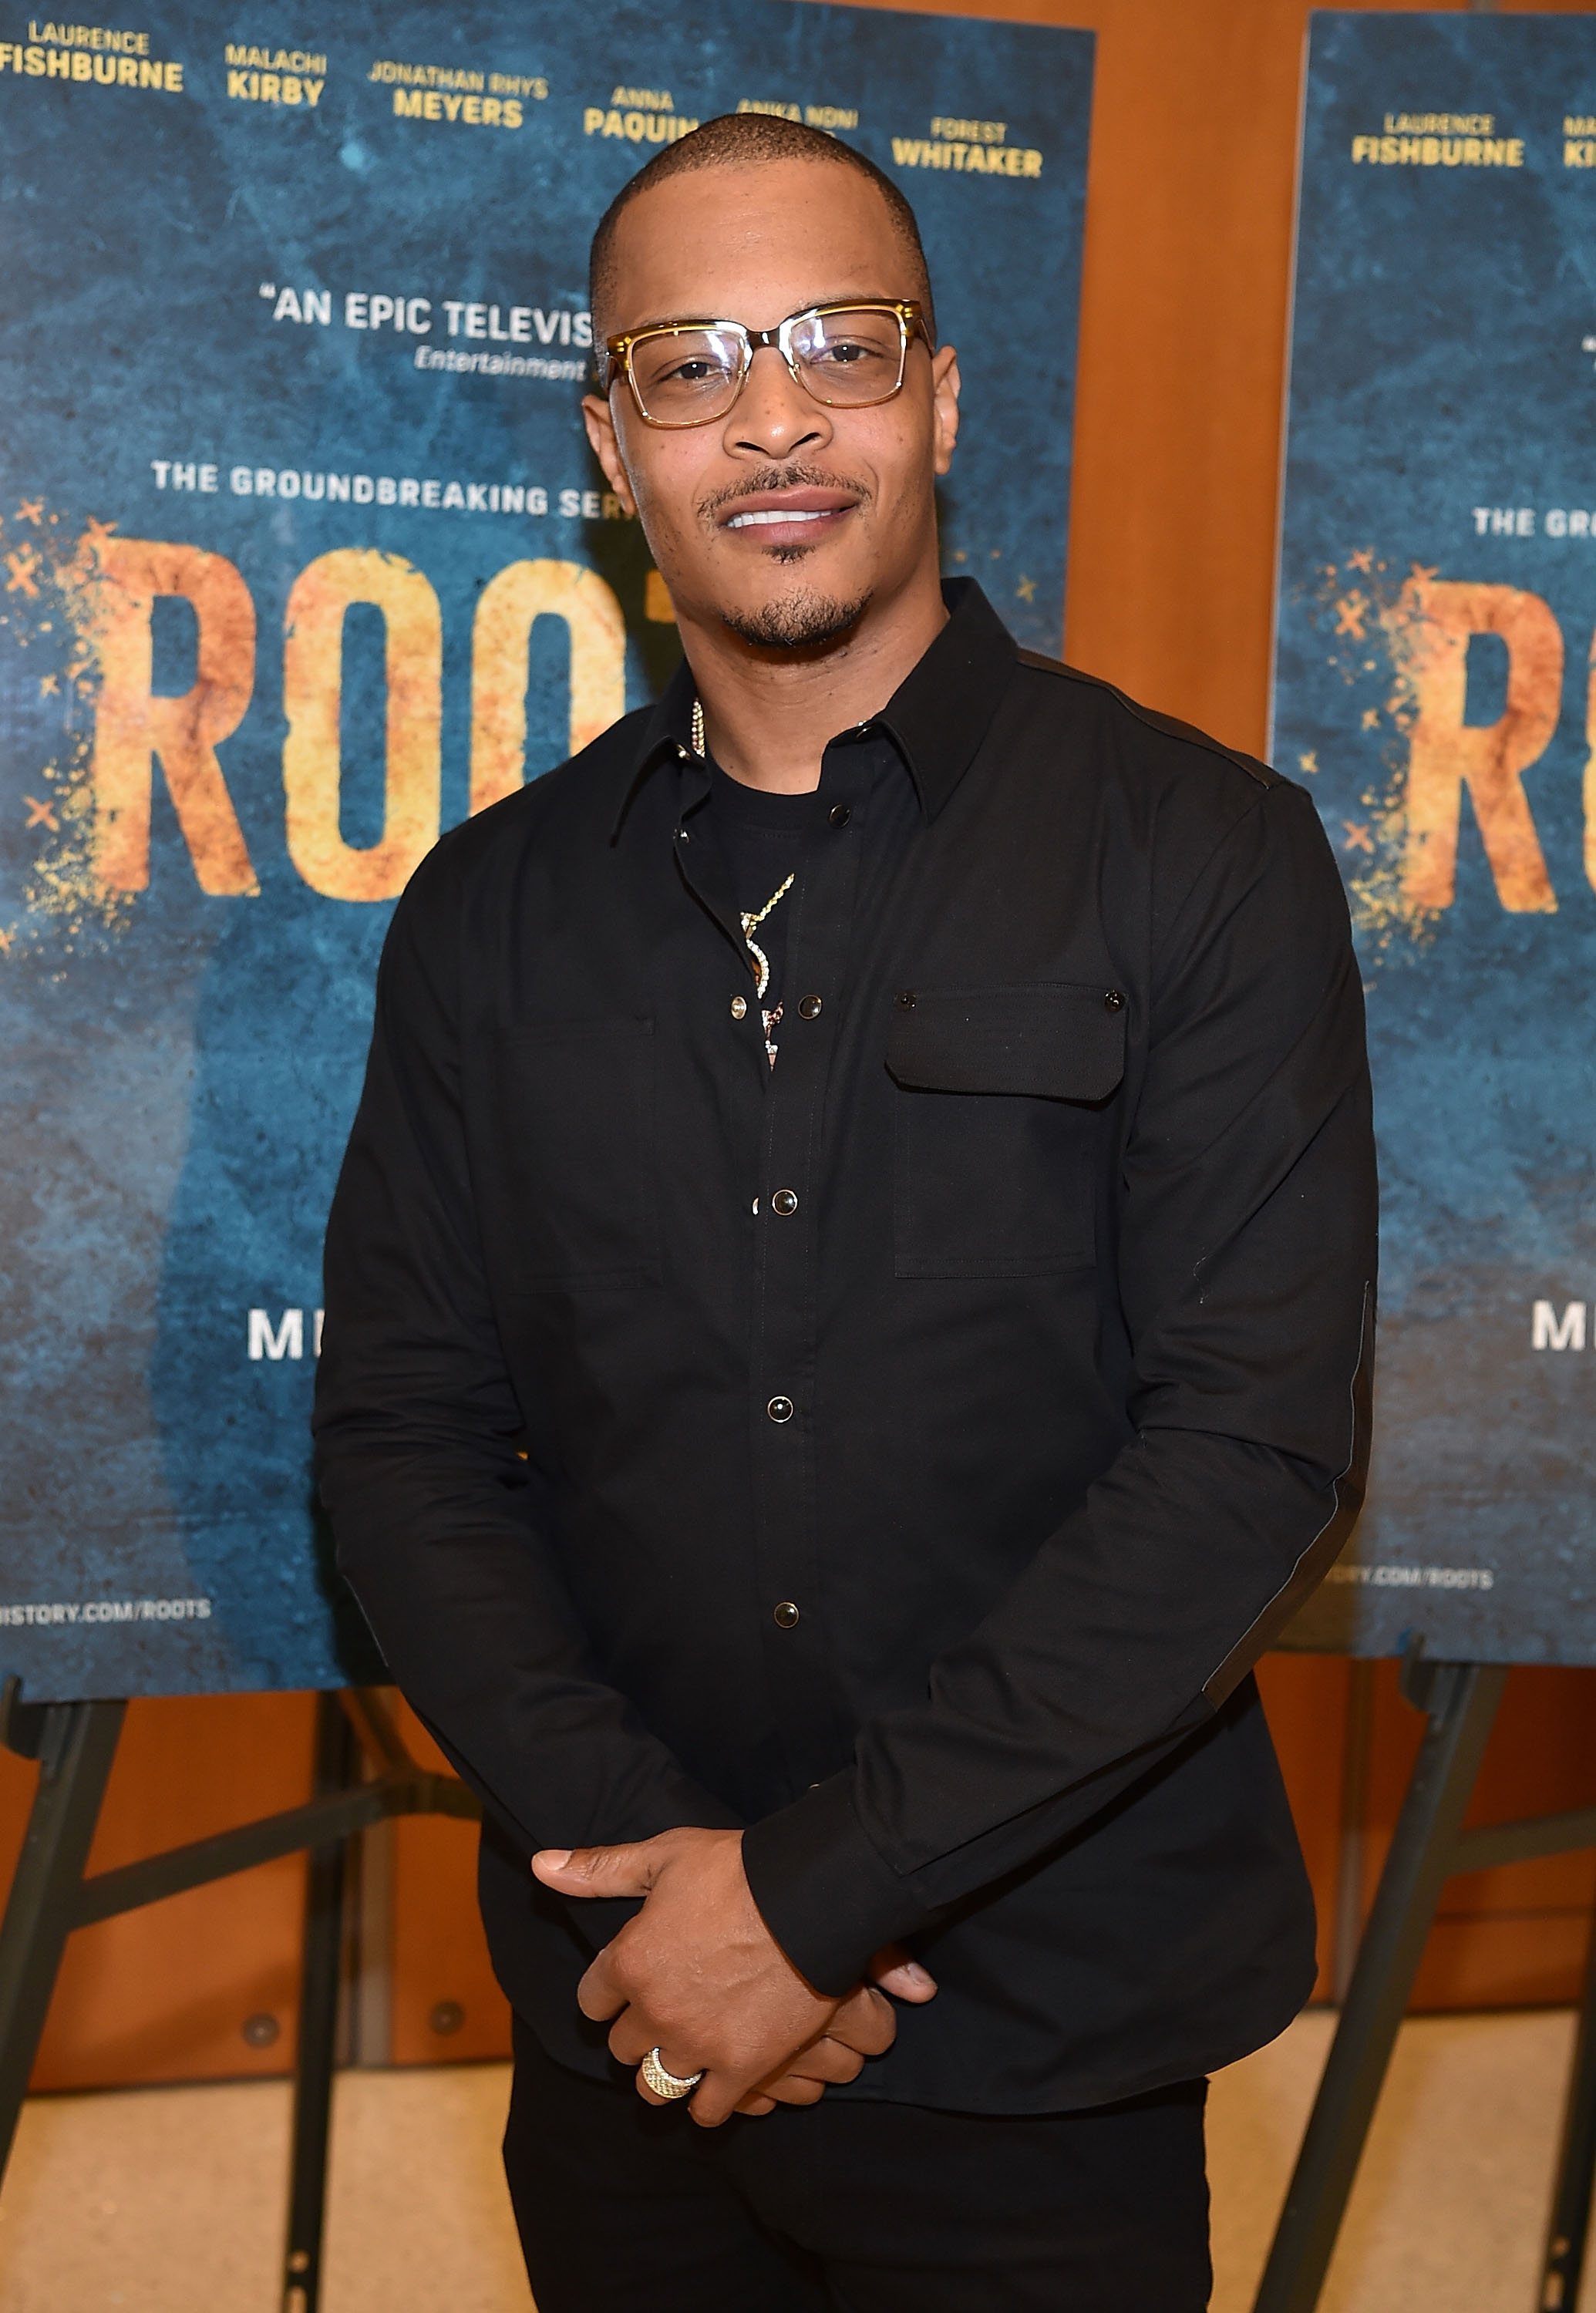 History's ROOTS - Atlanta Influencer Advance Screening